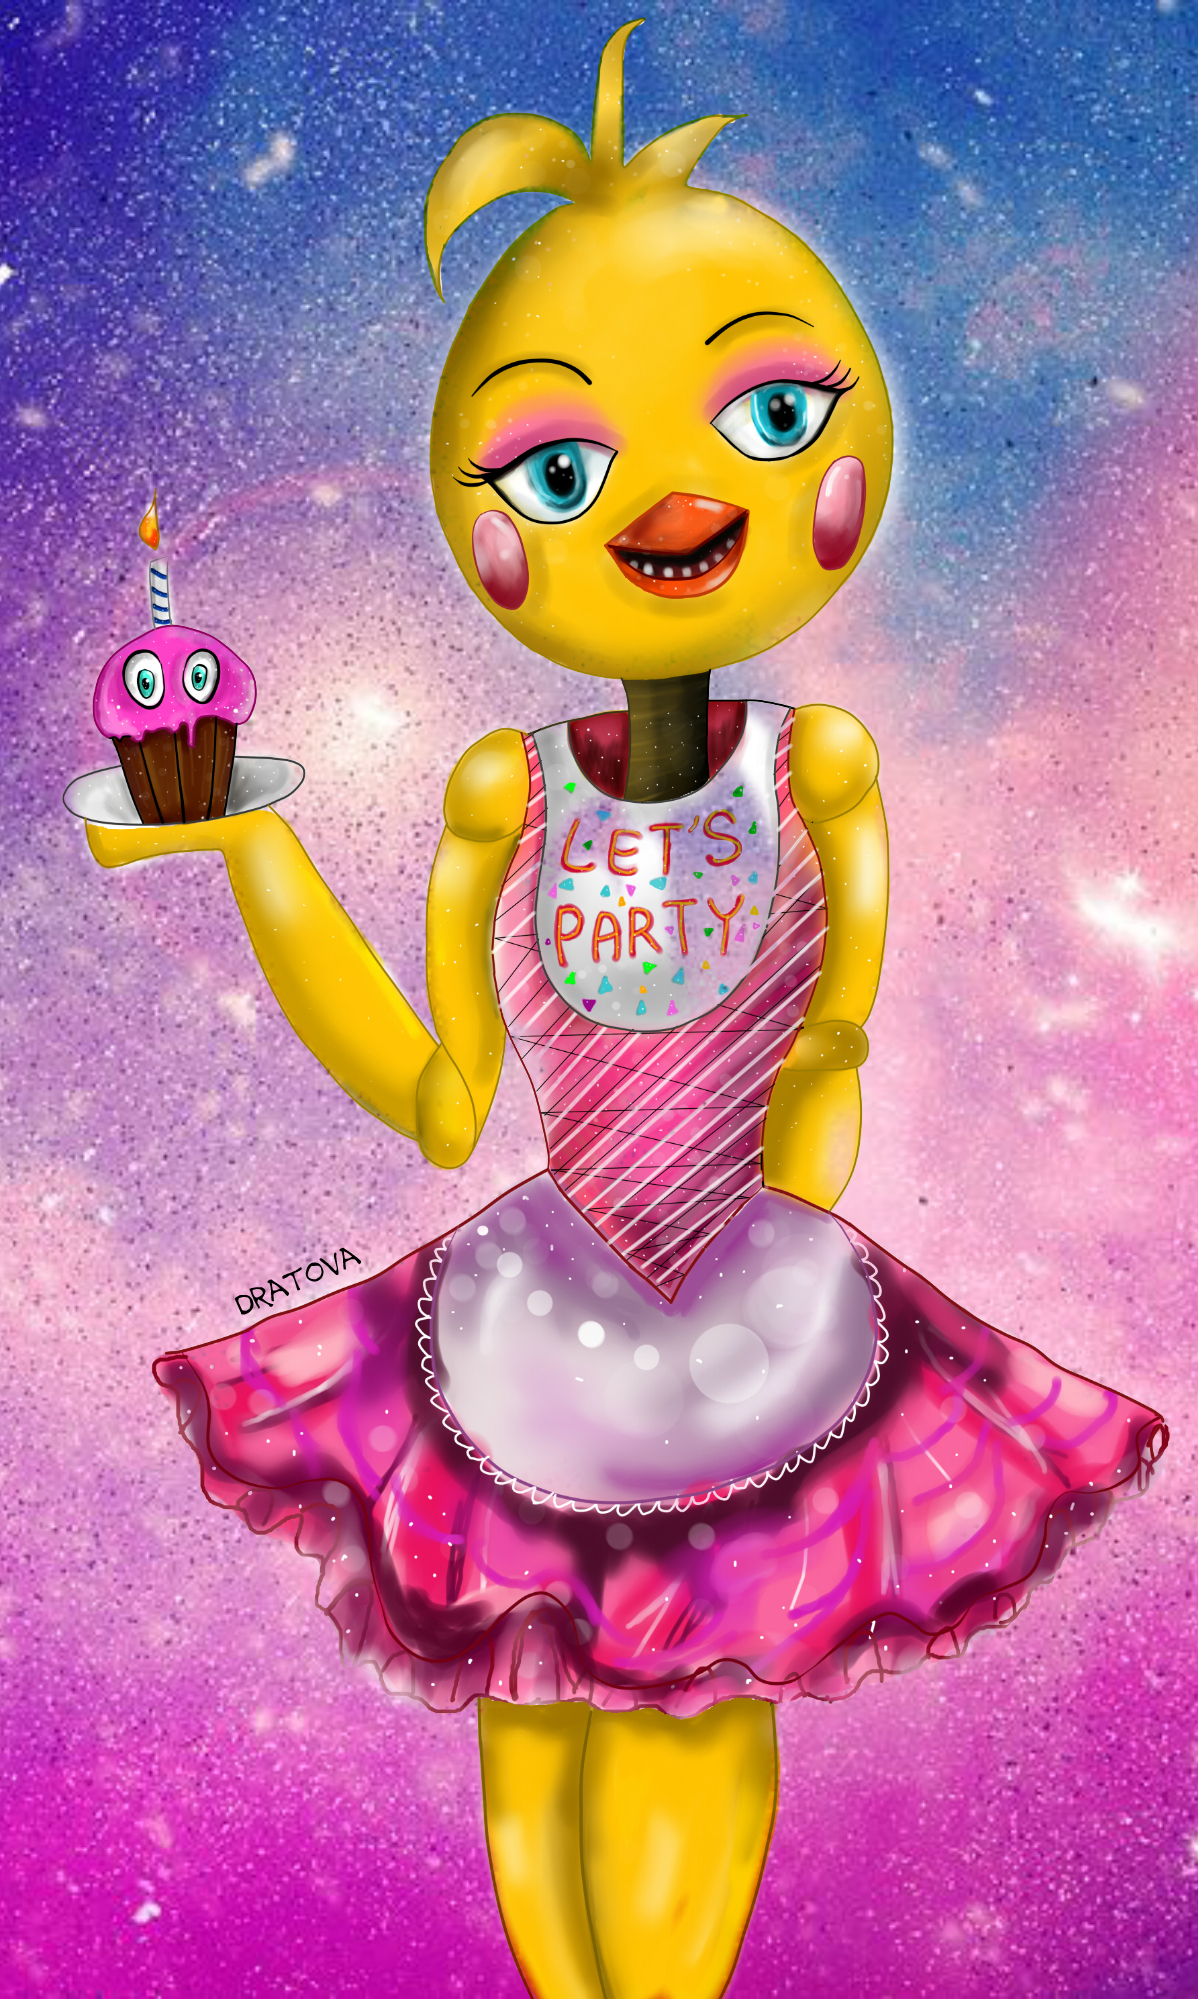 Five nights at freddys 2 toy chica fan art